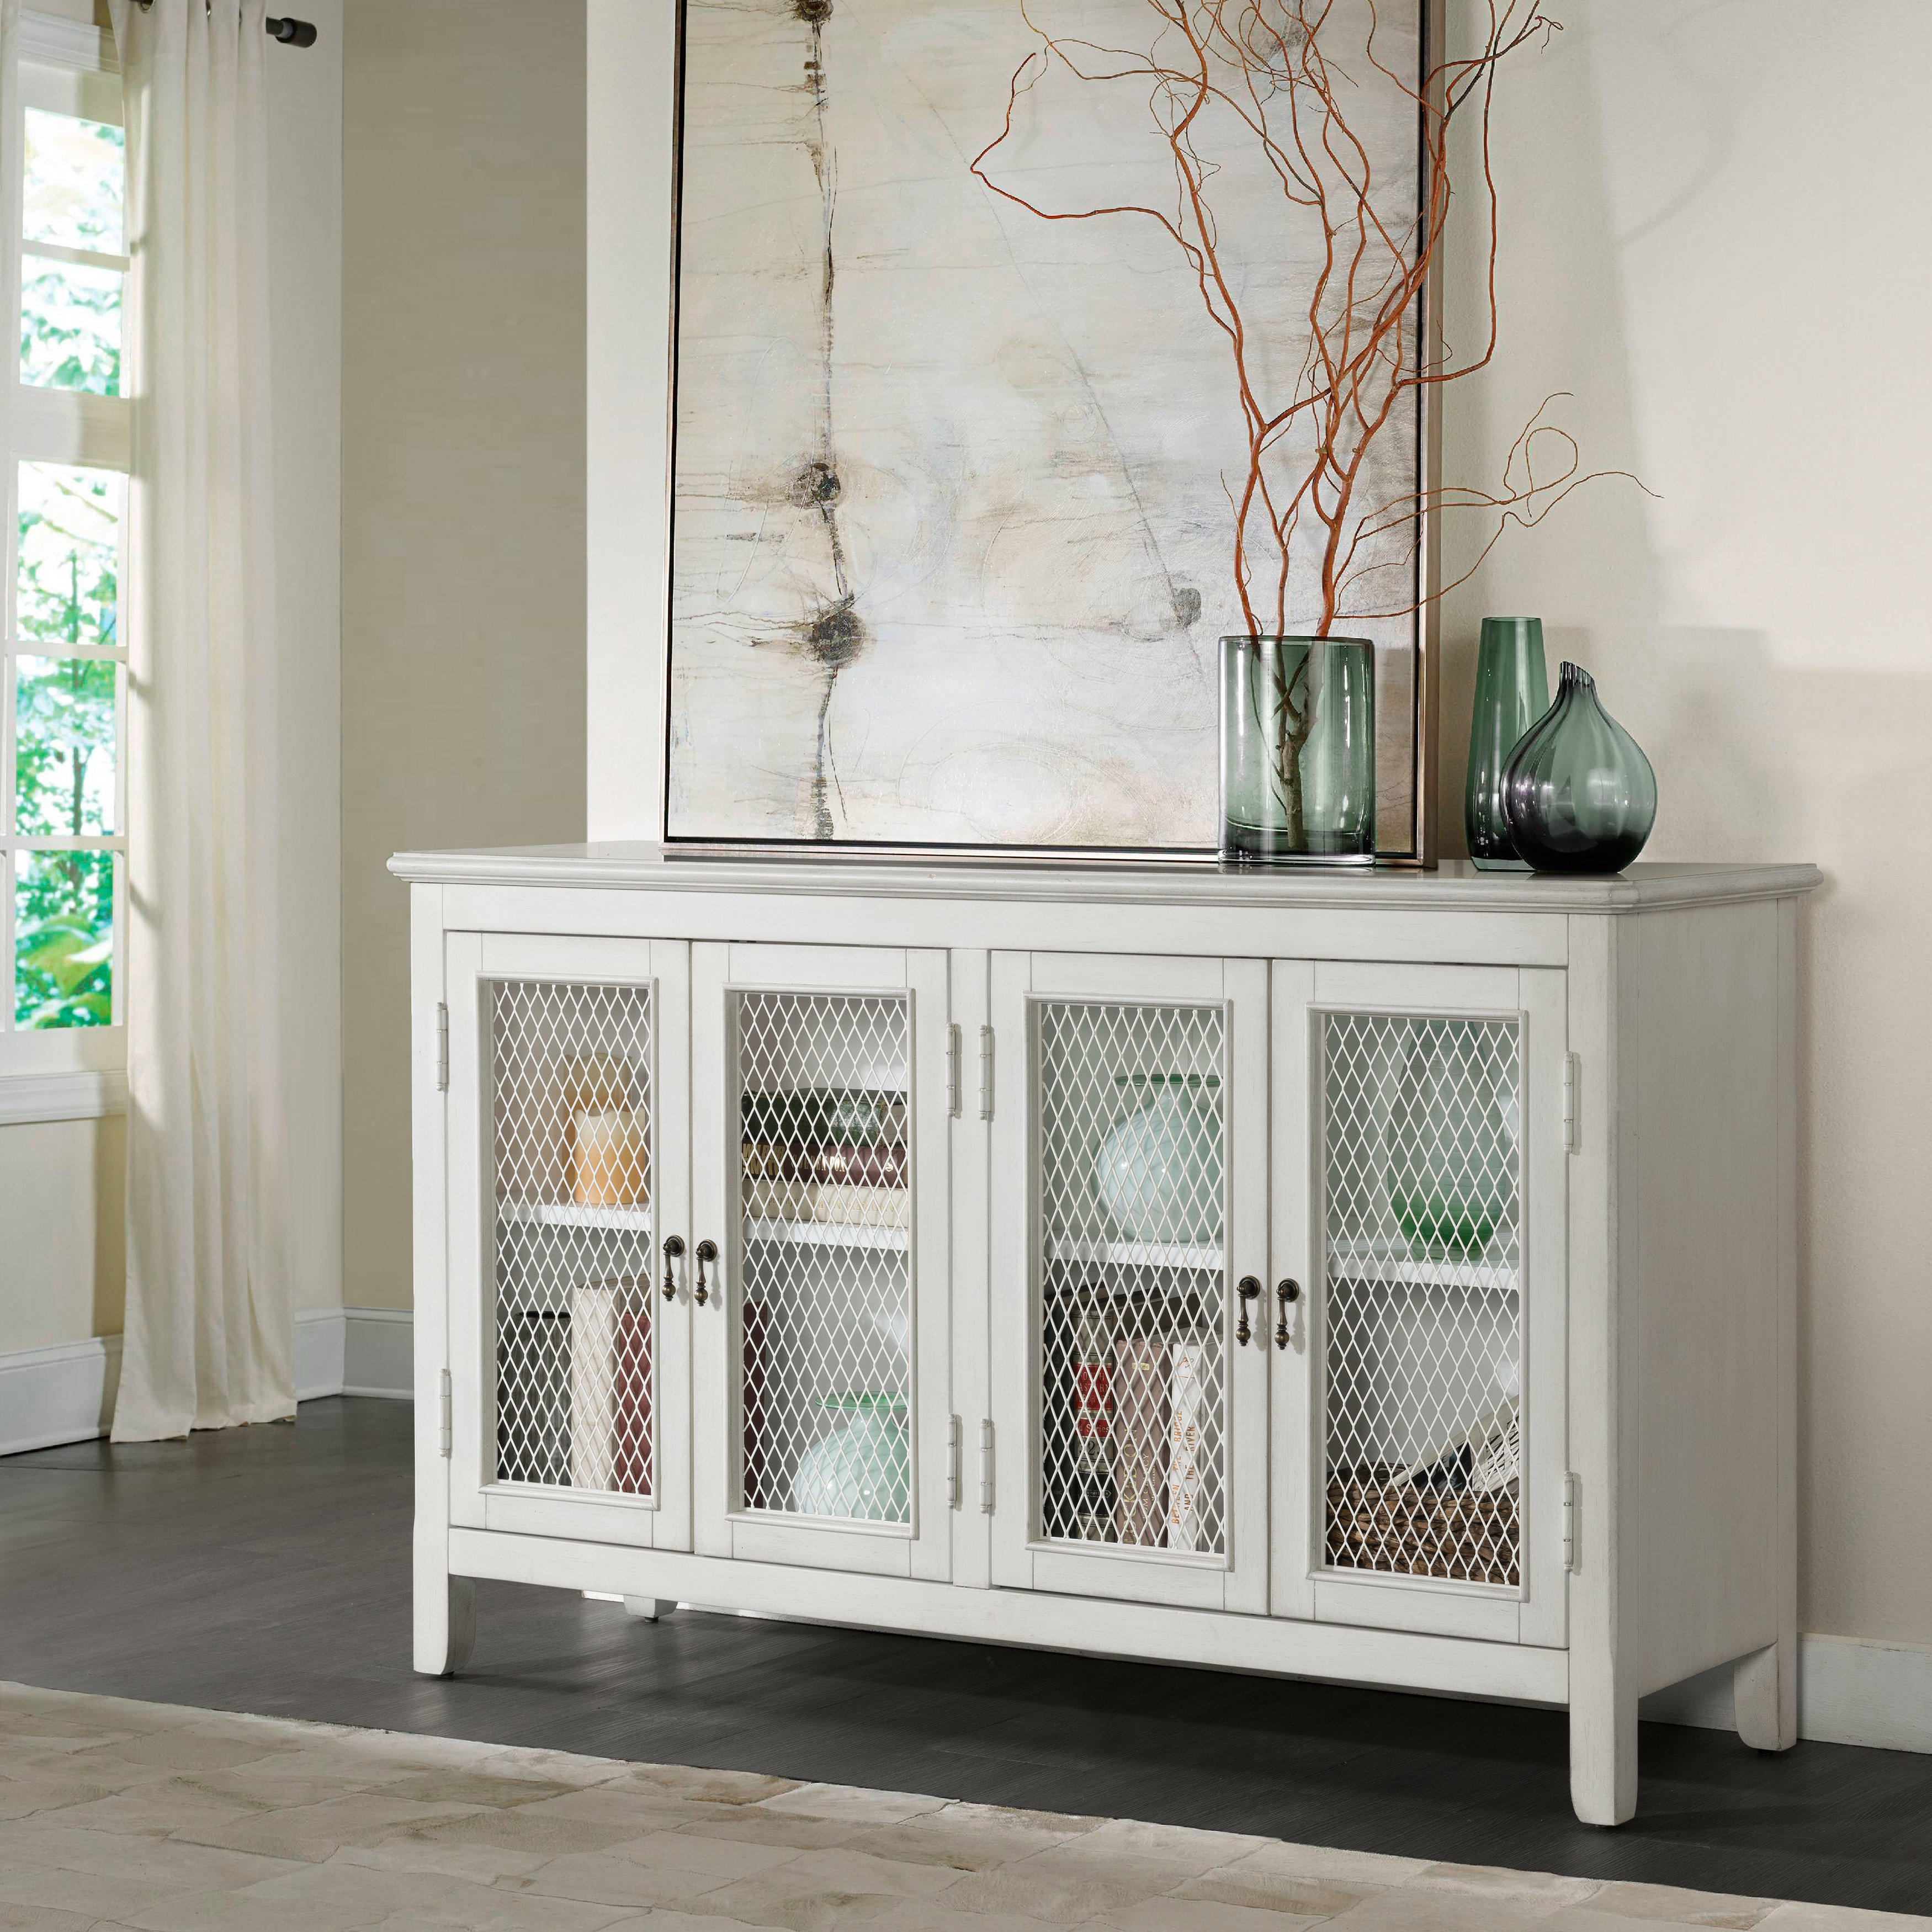 South Miami Sideboard | Joss & Main In Most Current South Miami Sideboards (#16 of 20)